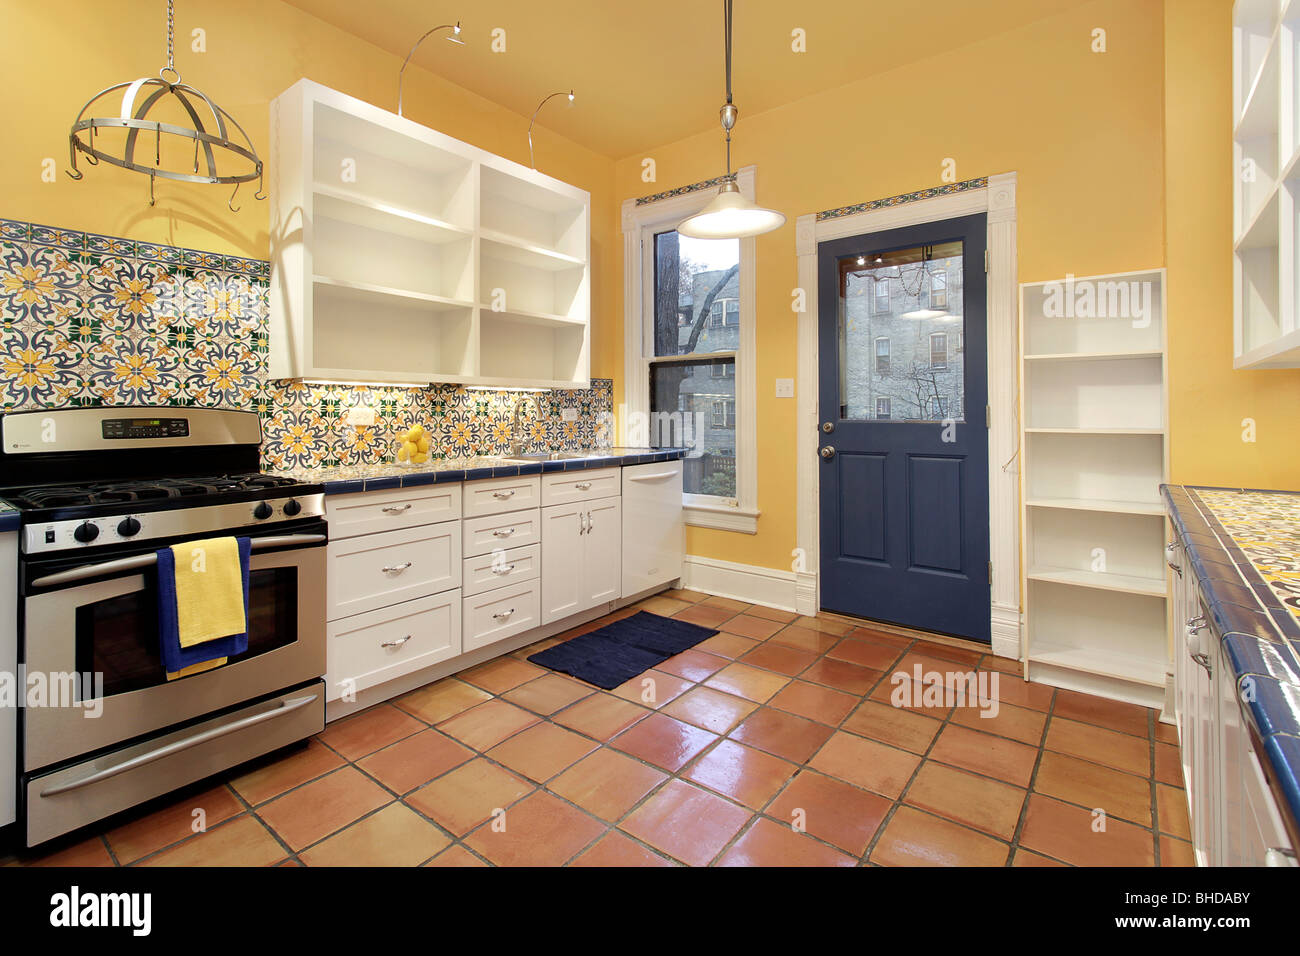 slate stove backsplash kitchen ideas html with Stock Photo Kitchen In Suburban Home With Terra Cotta Floor Tile And Yellow Walls 27953071 on Azulejos Perfectos Para Tu Cocina Modelos Diversos likewise Brooks Custom additionally P10025478 likewise 8 Stunning Kitchen Islands b 7520488 also JVW53.